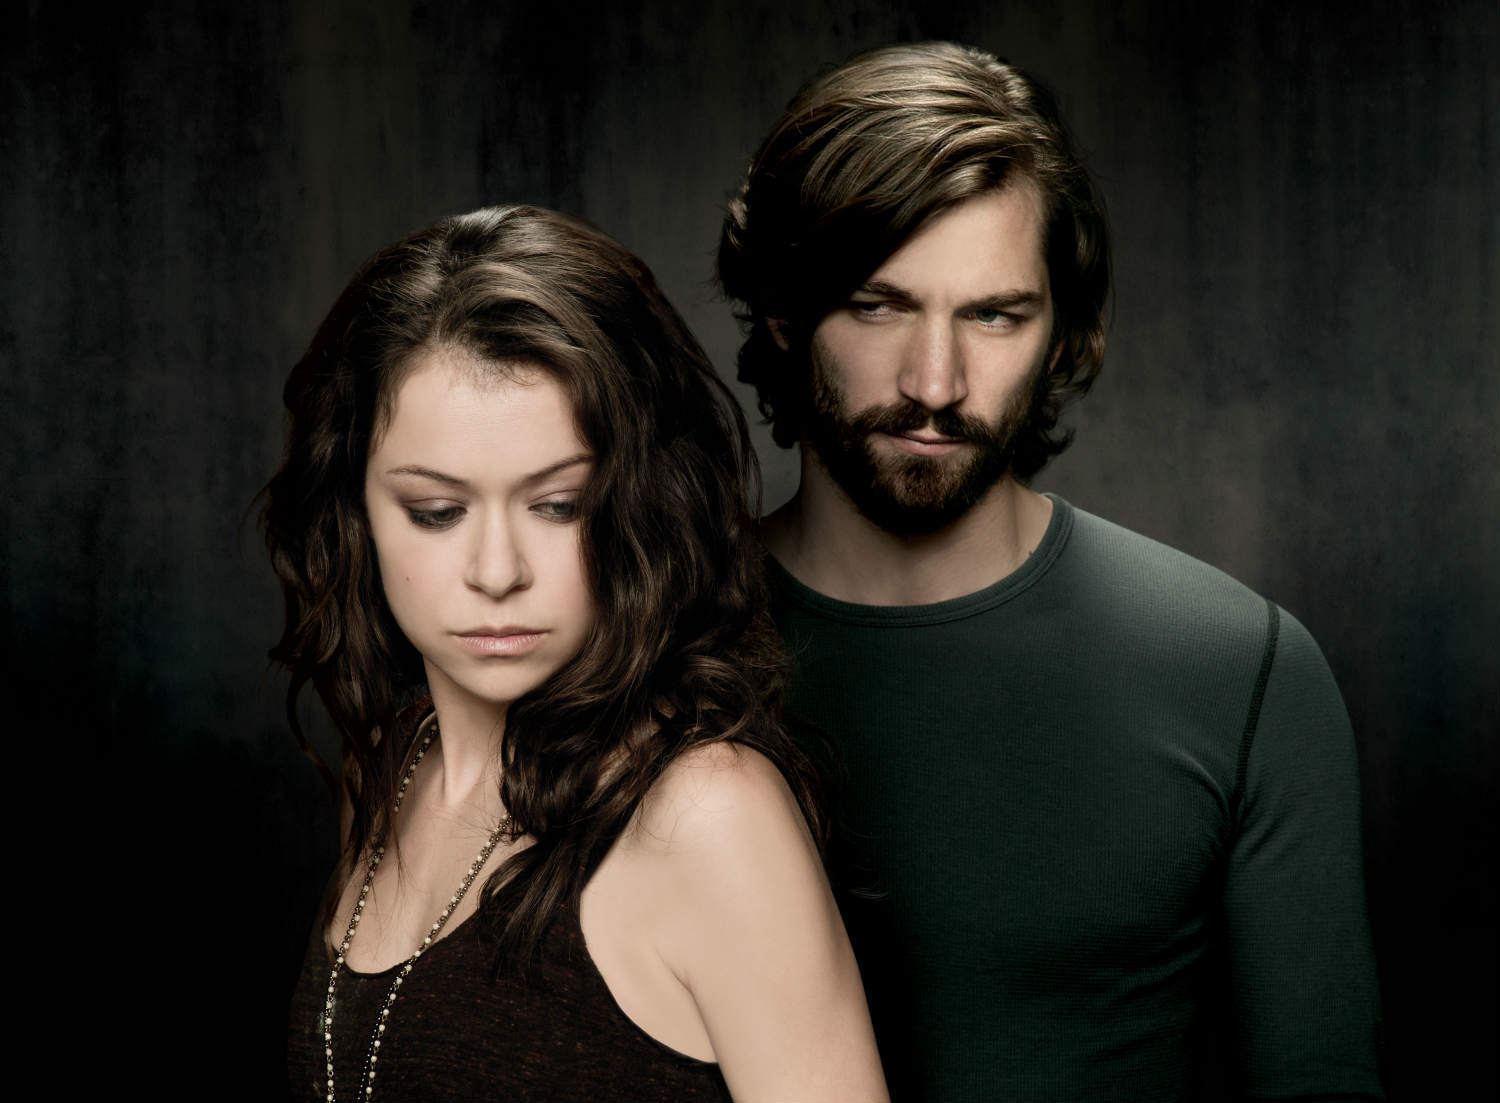 zap-orphan-black-season-2-posters-photos-20140-018